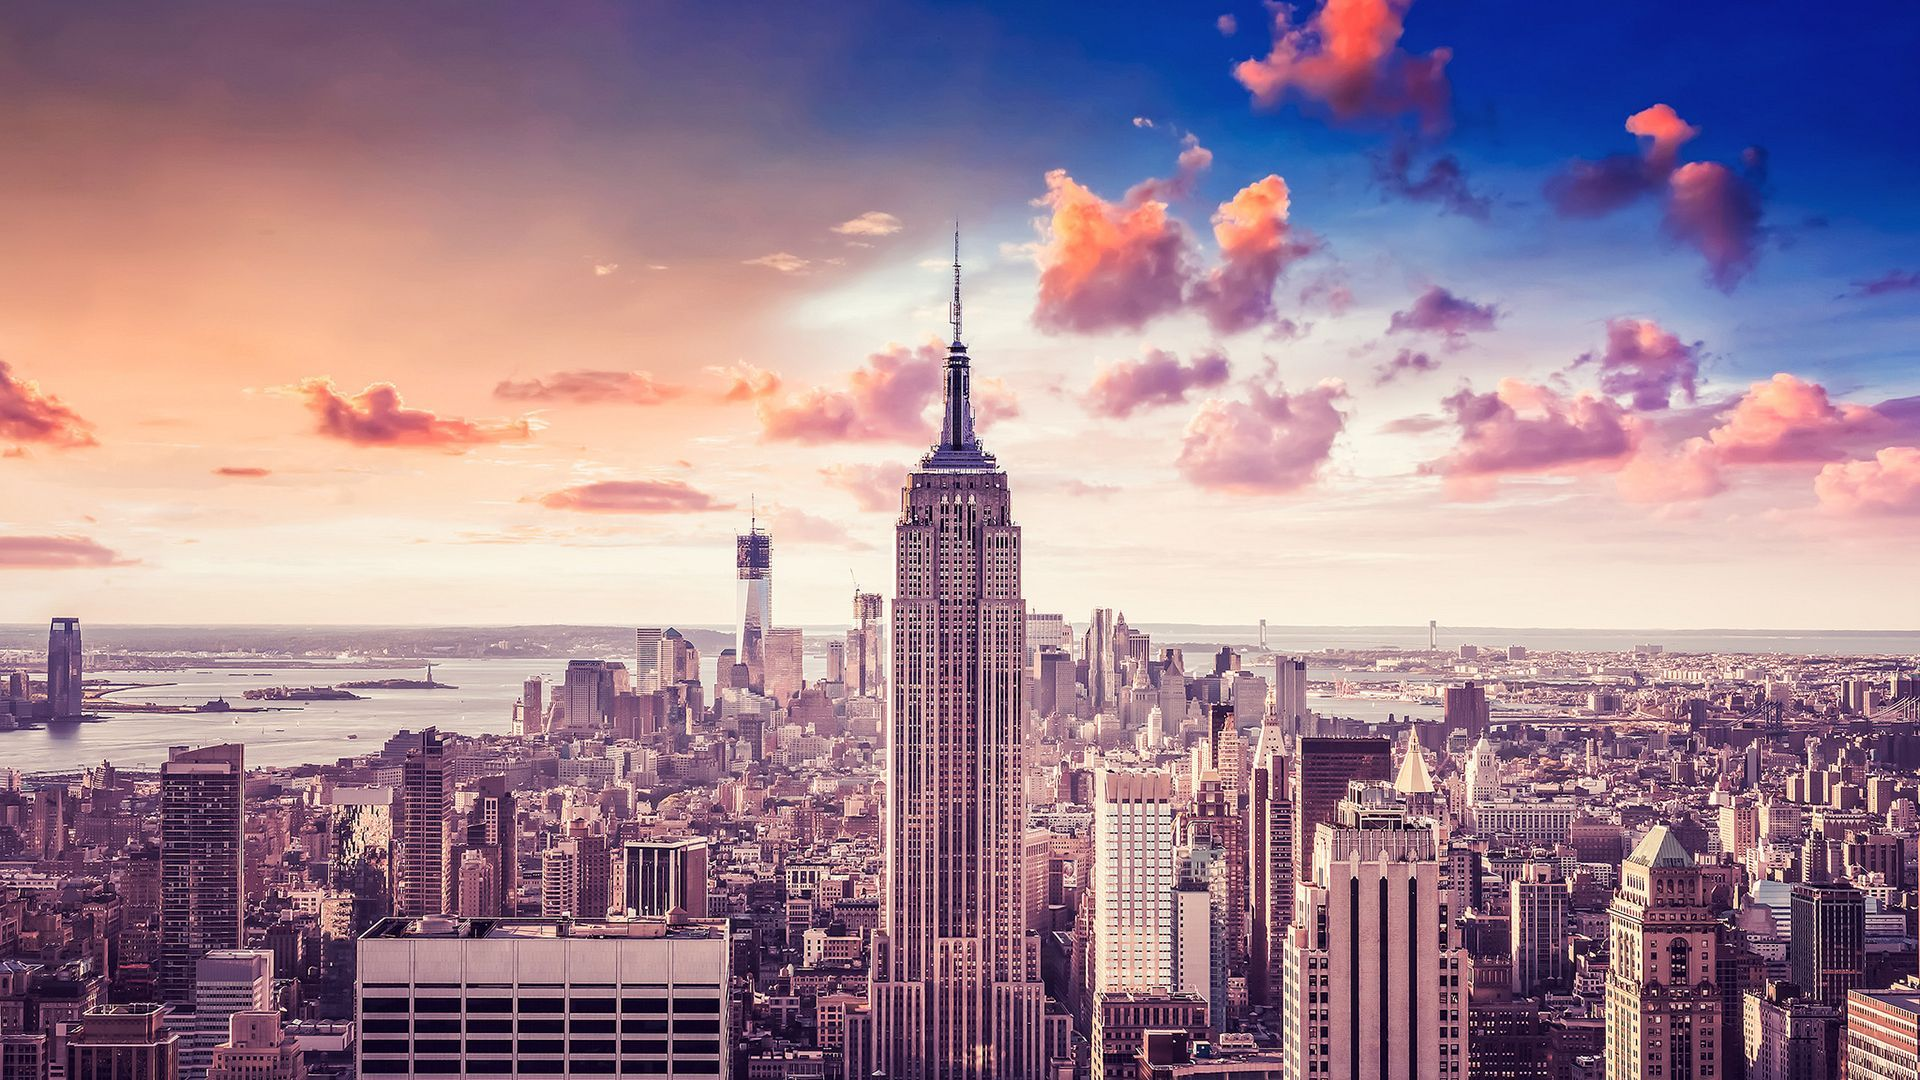 New york desktop hd wallpaper wallpapersafari for Immagini new york hd